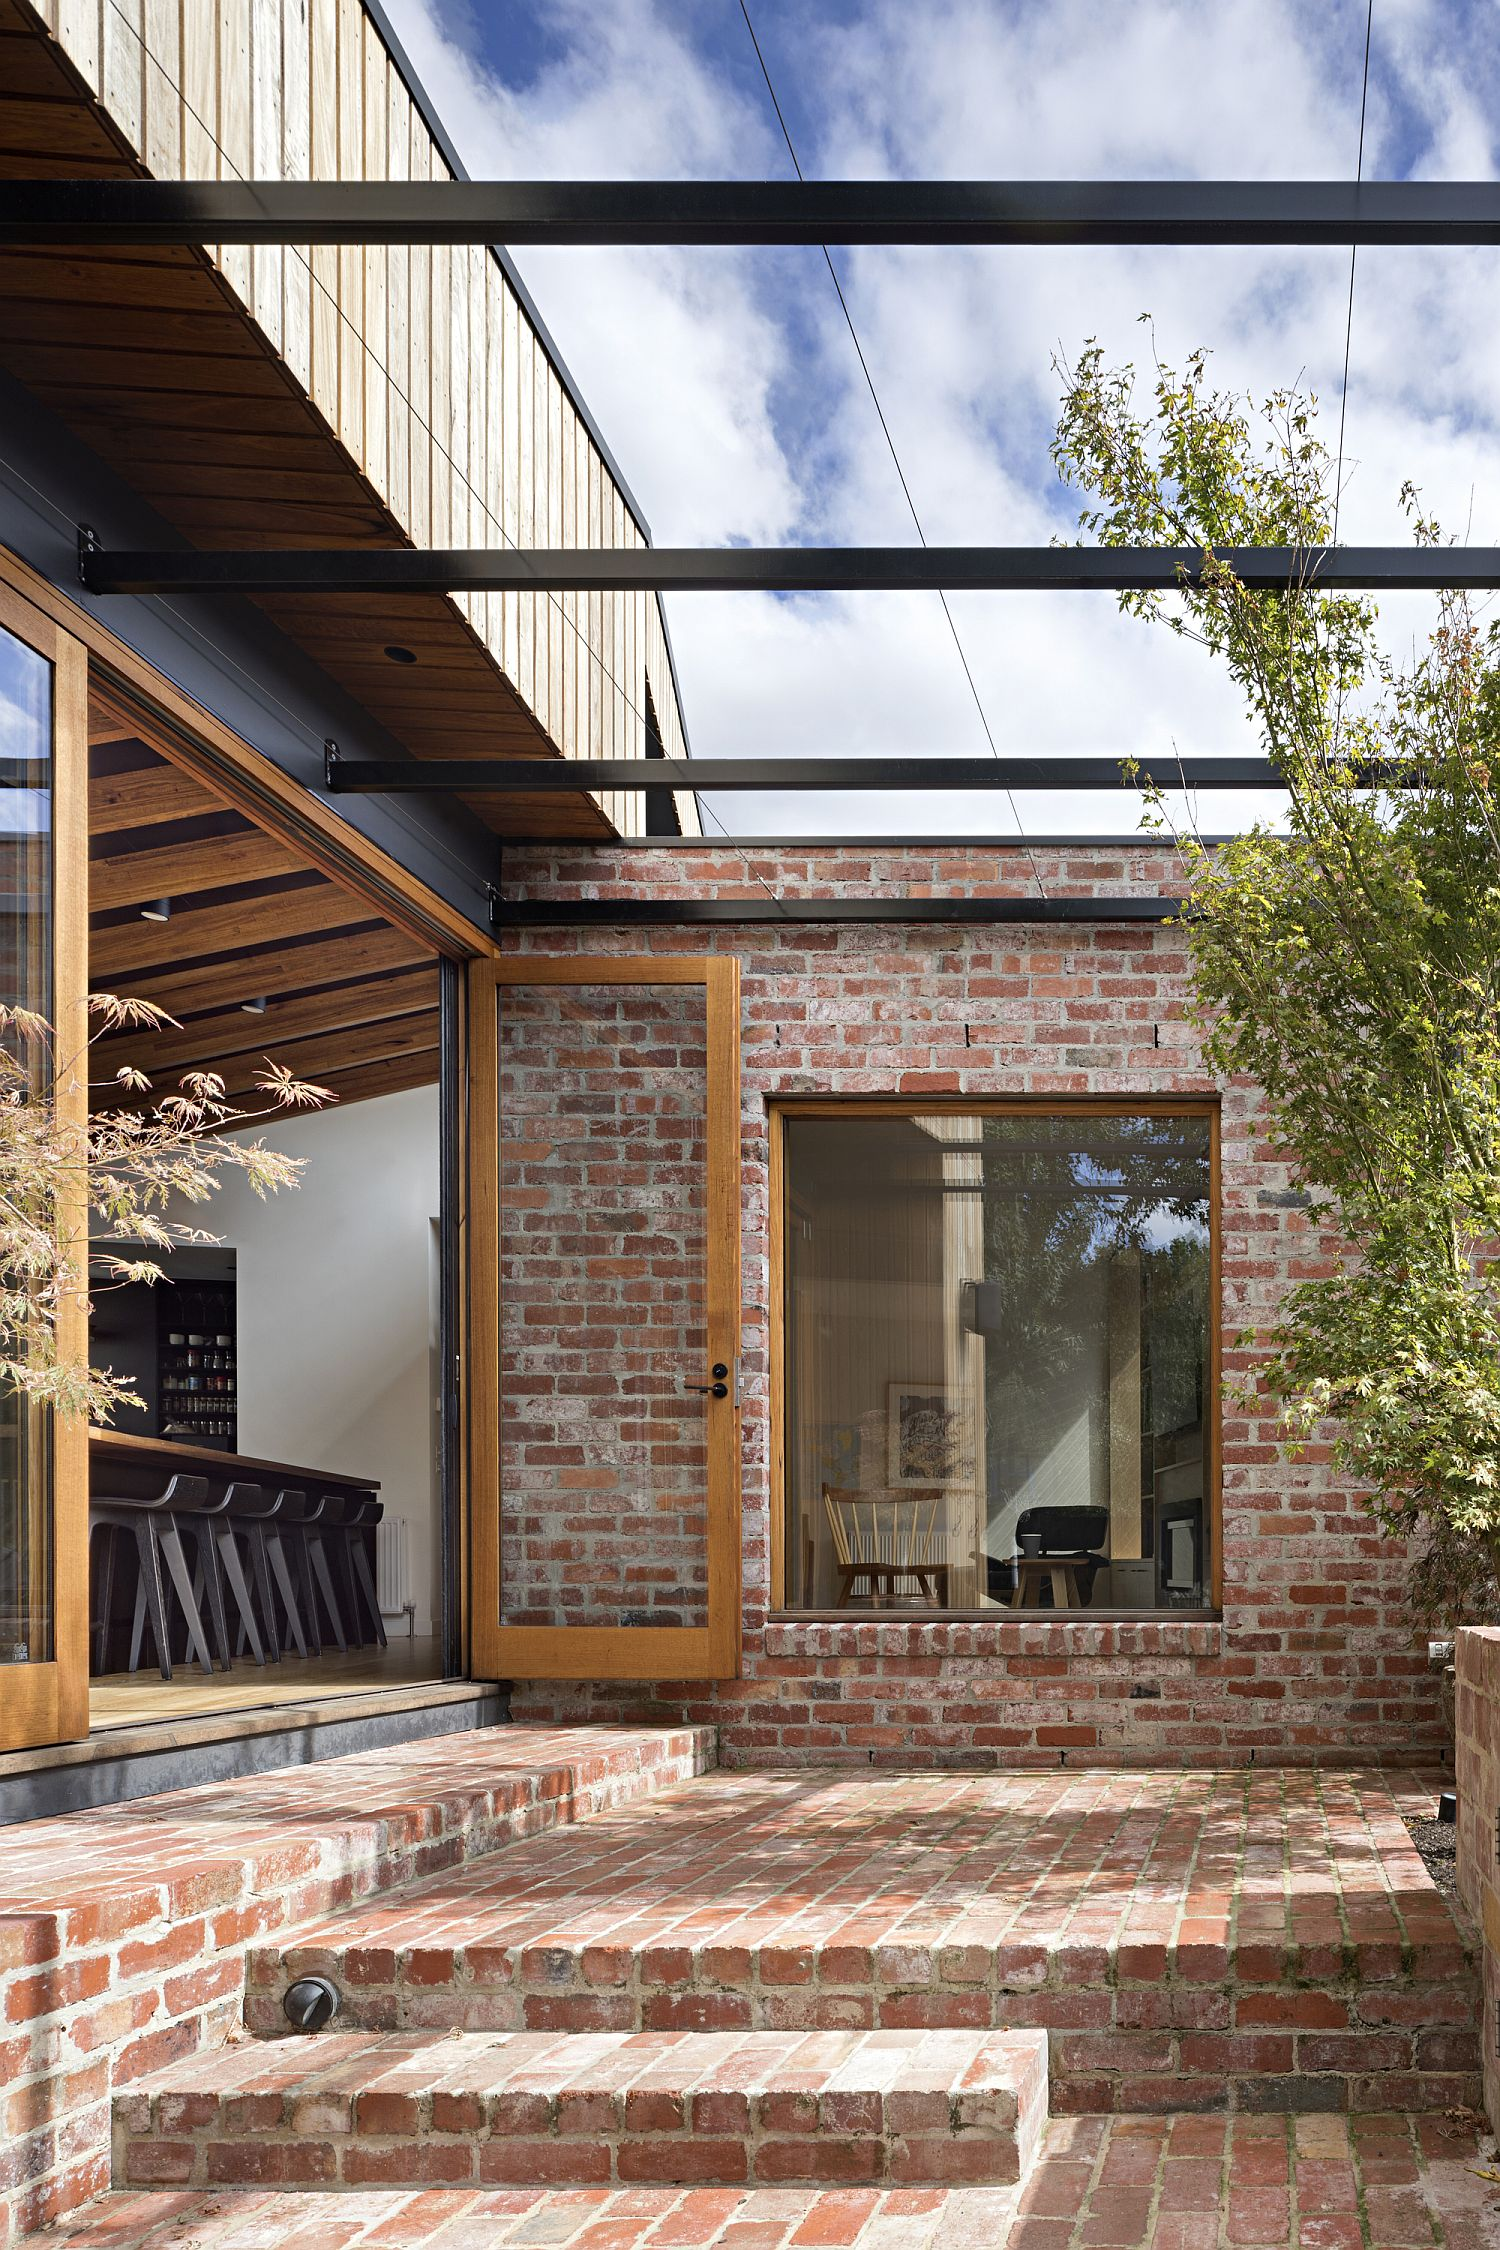 Restored and altered Victorian home with brick and timber exterior